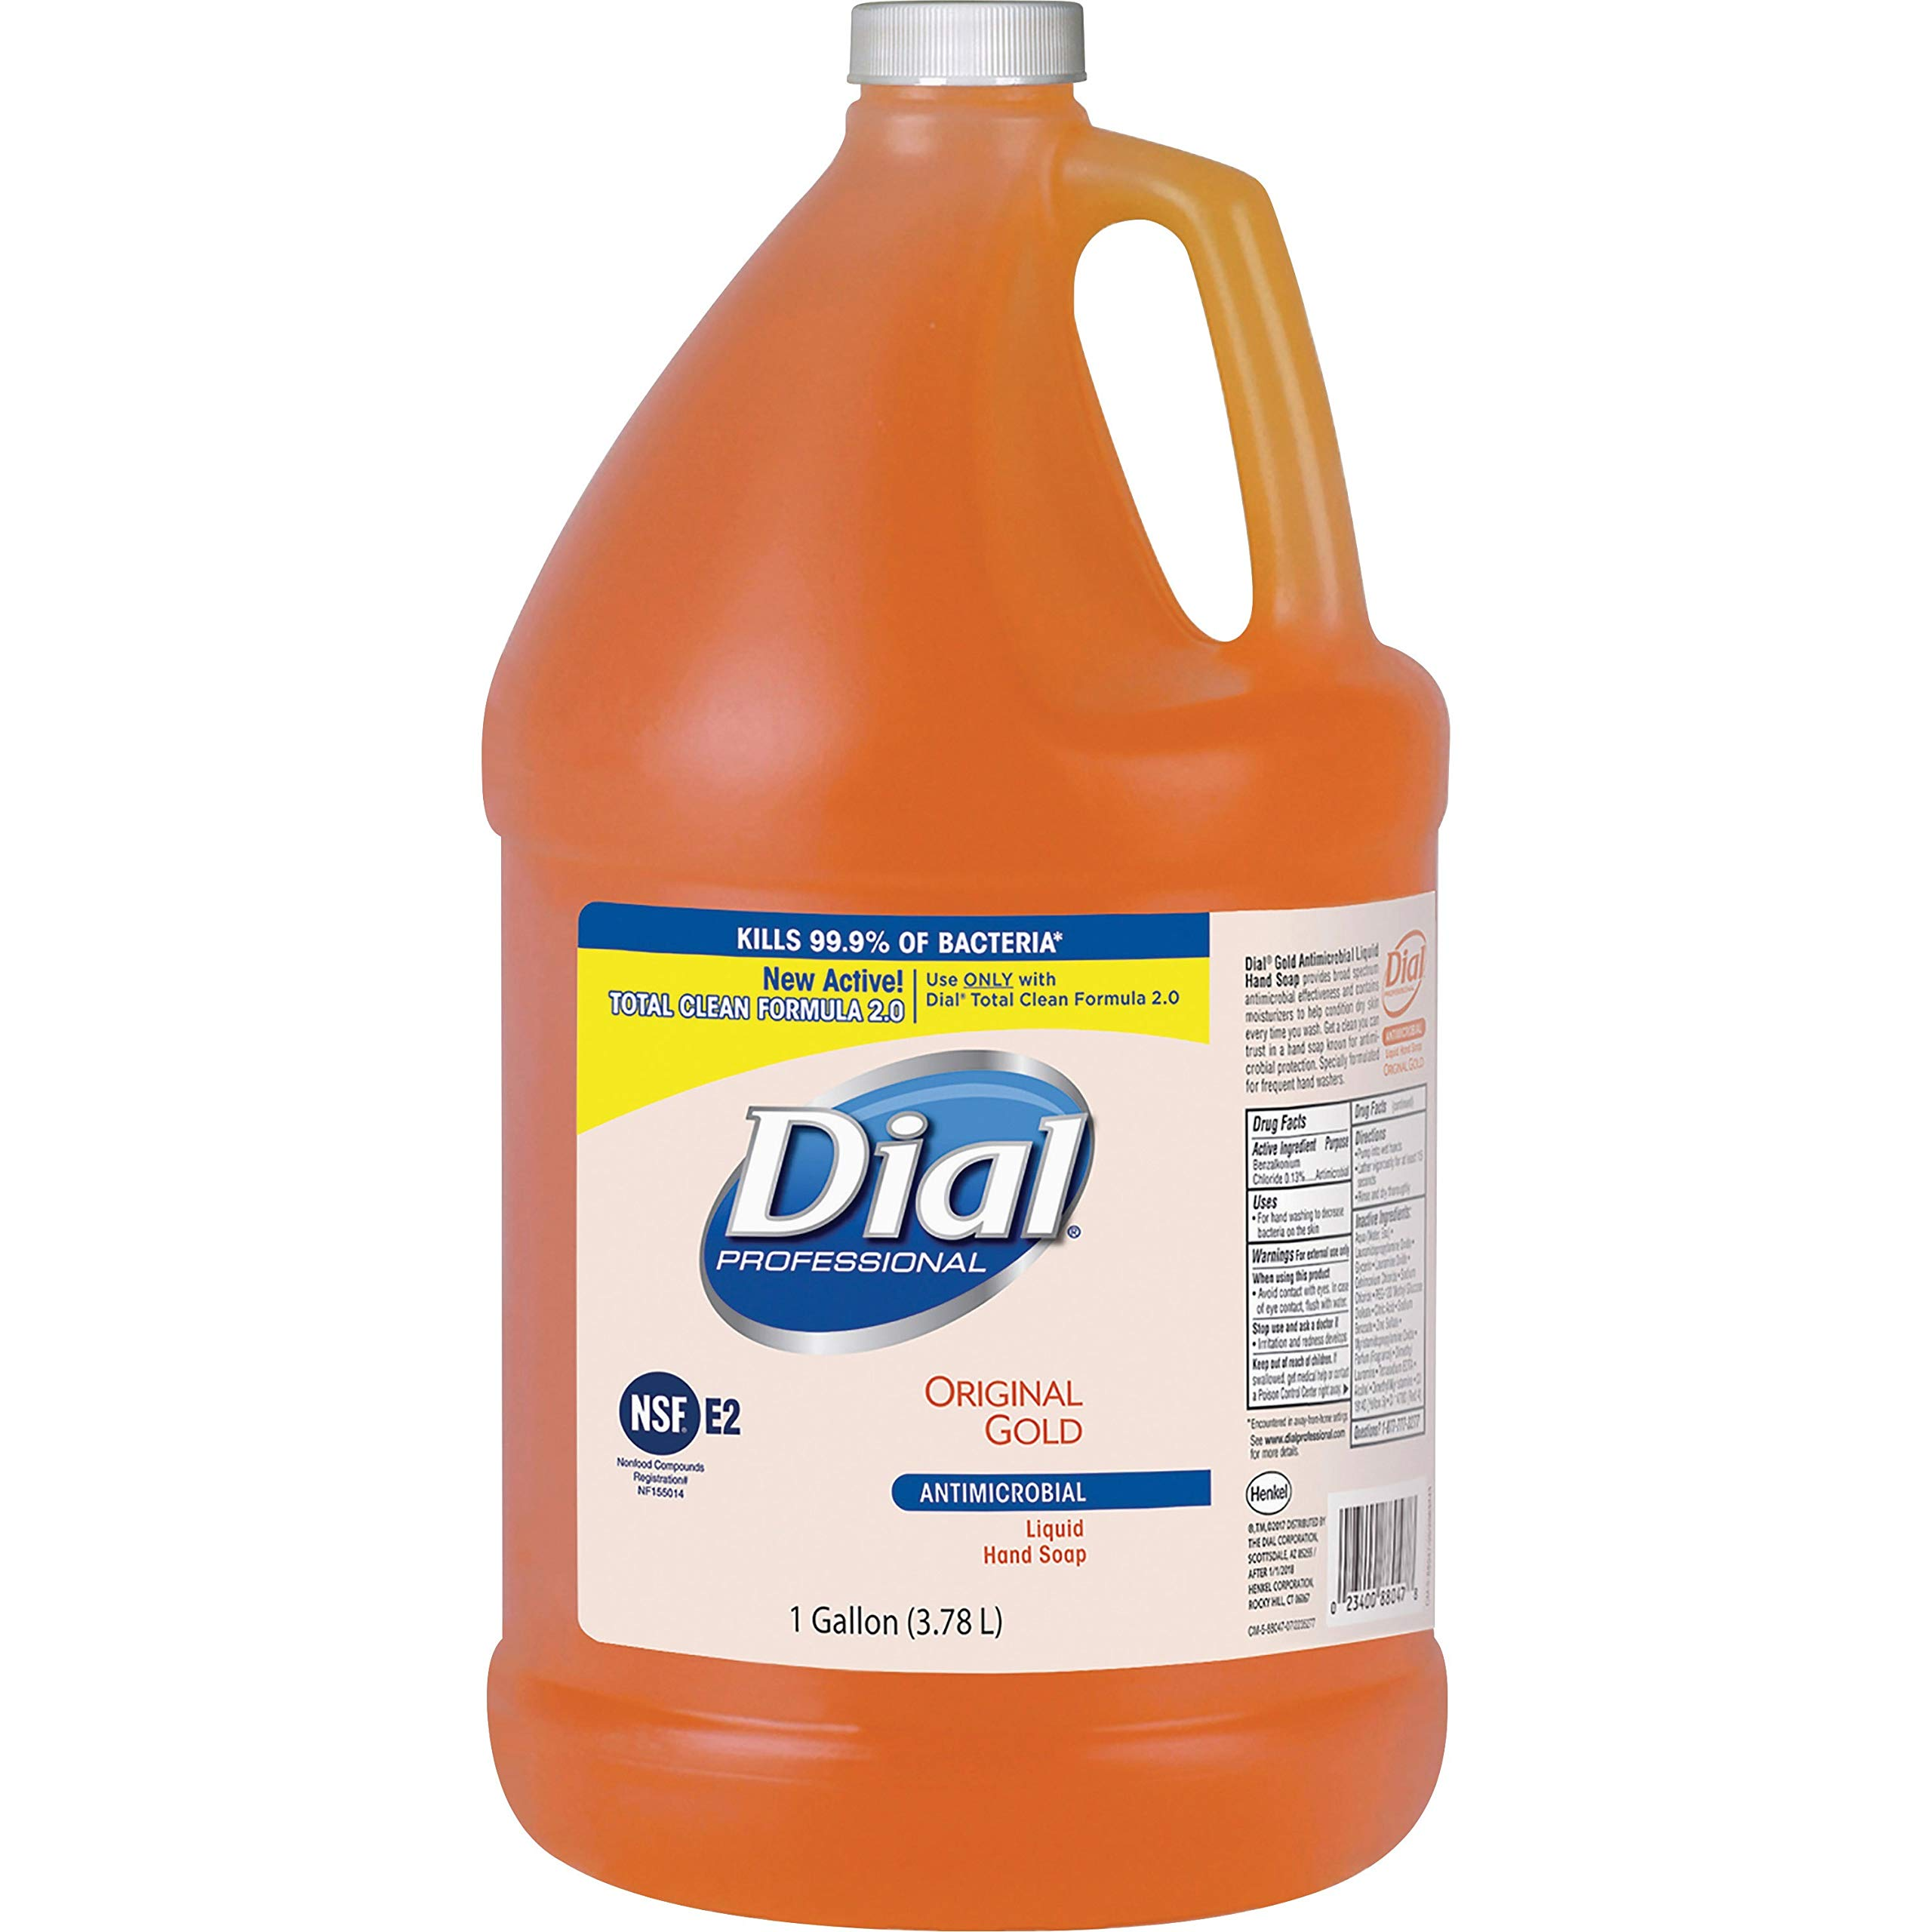 DIAL 1 gal. Floral Antimicrobial Soap by Dial